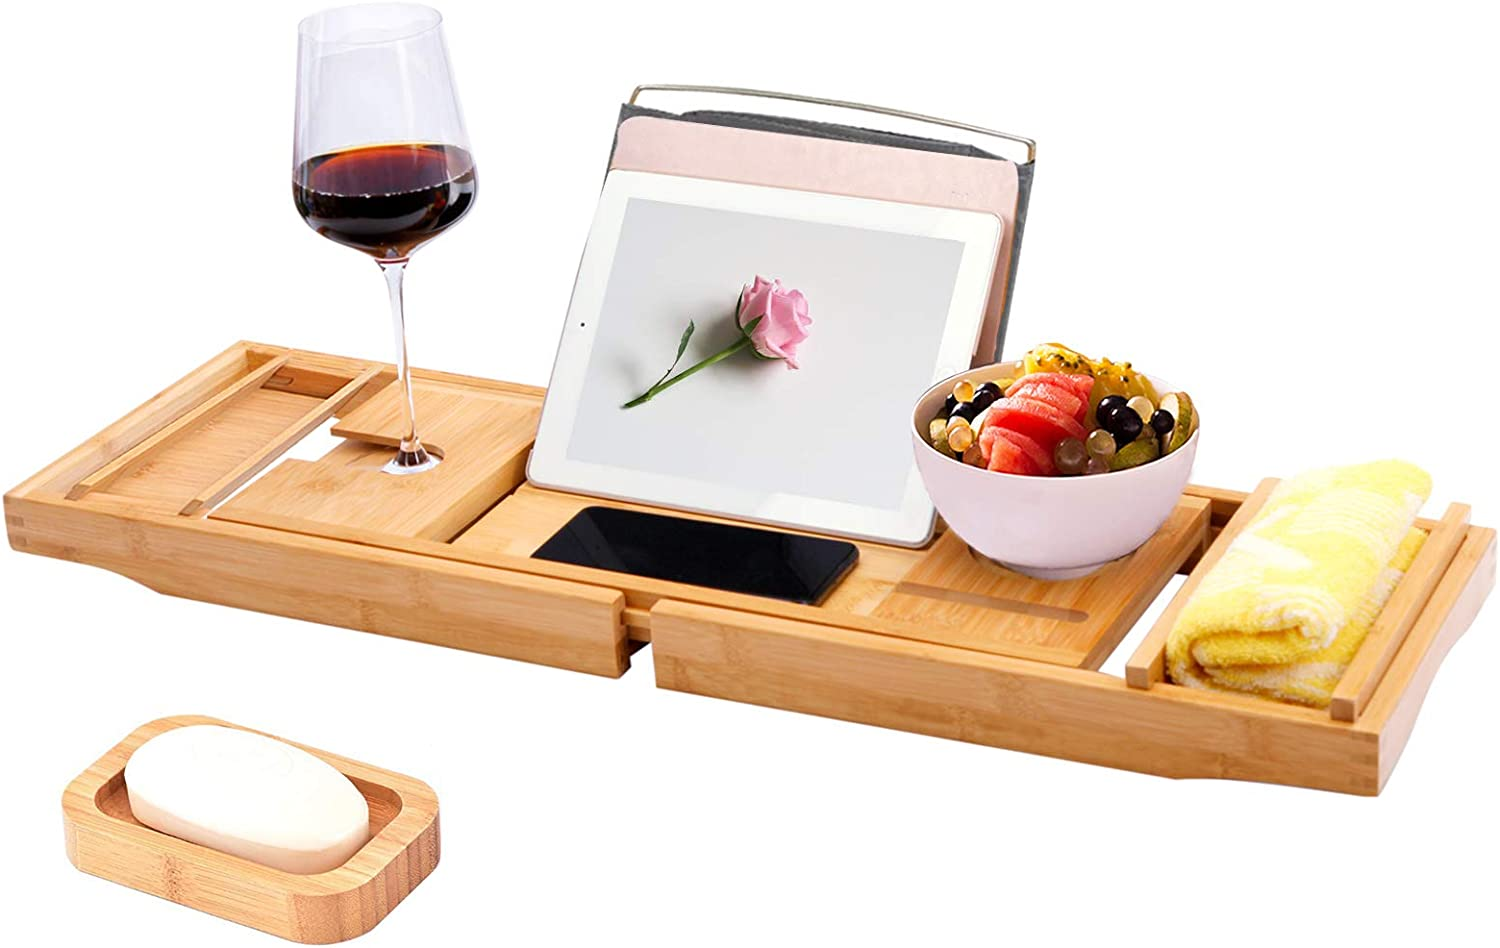 wholesale Nonebranded Bathtub Caddy Fort Worth Mall Tray Expandable wi Bamboo